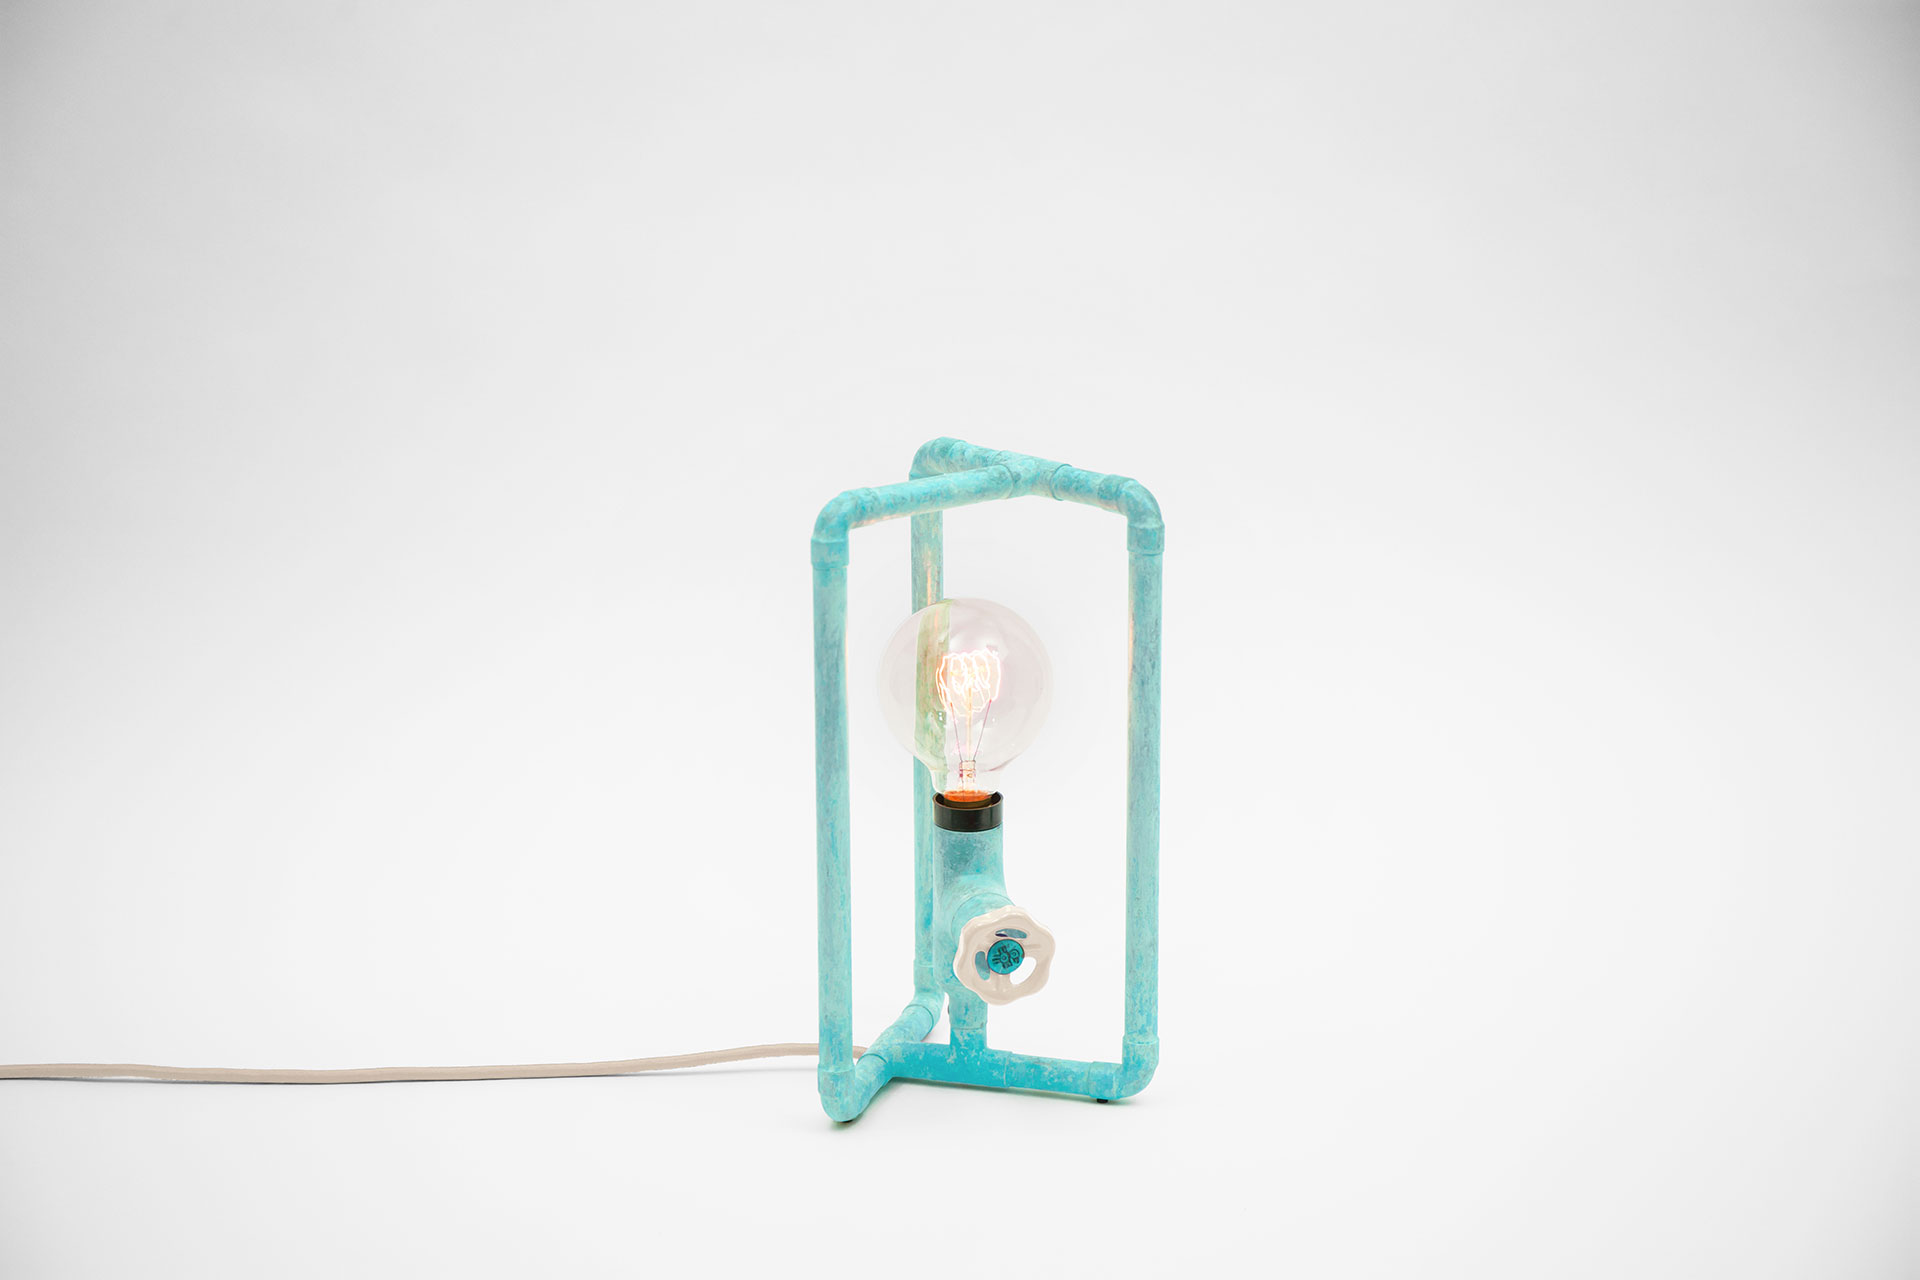 Scandinavian bedside lamp in trendy turquoise color with ivory knob dimmer and retro bulb